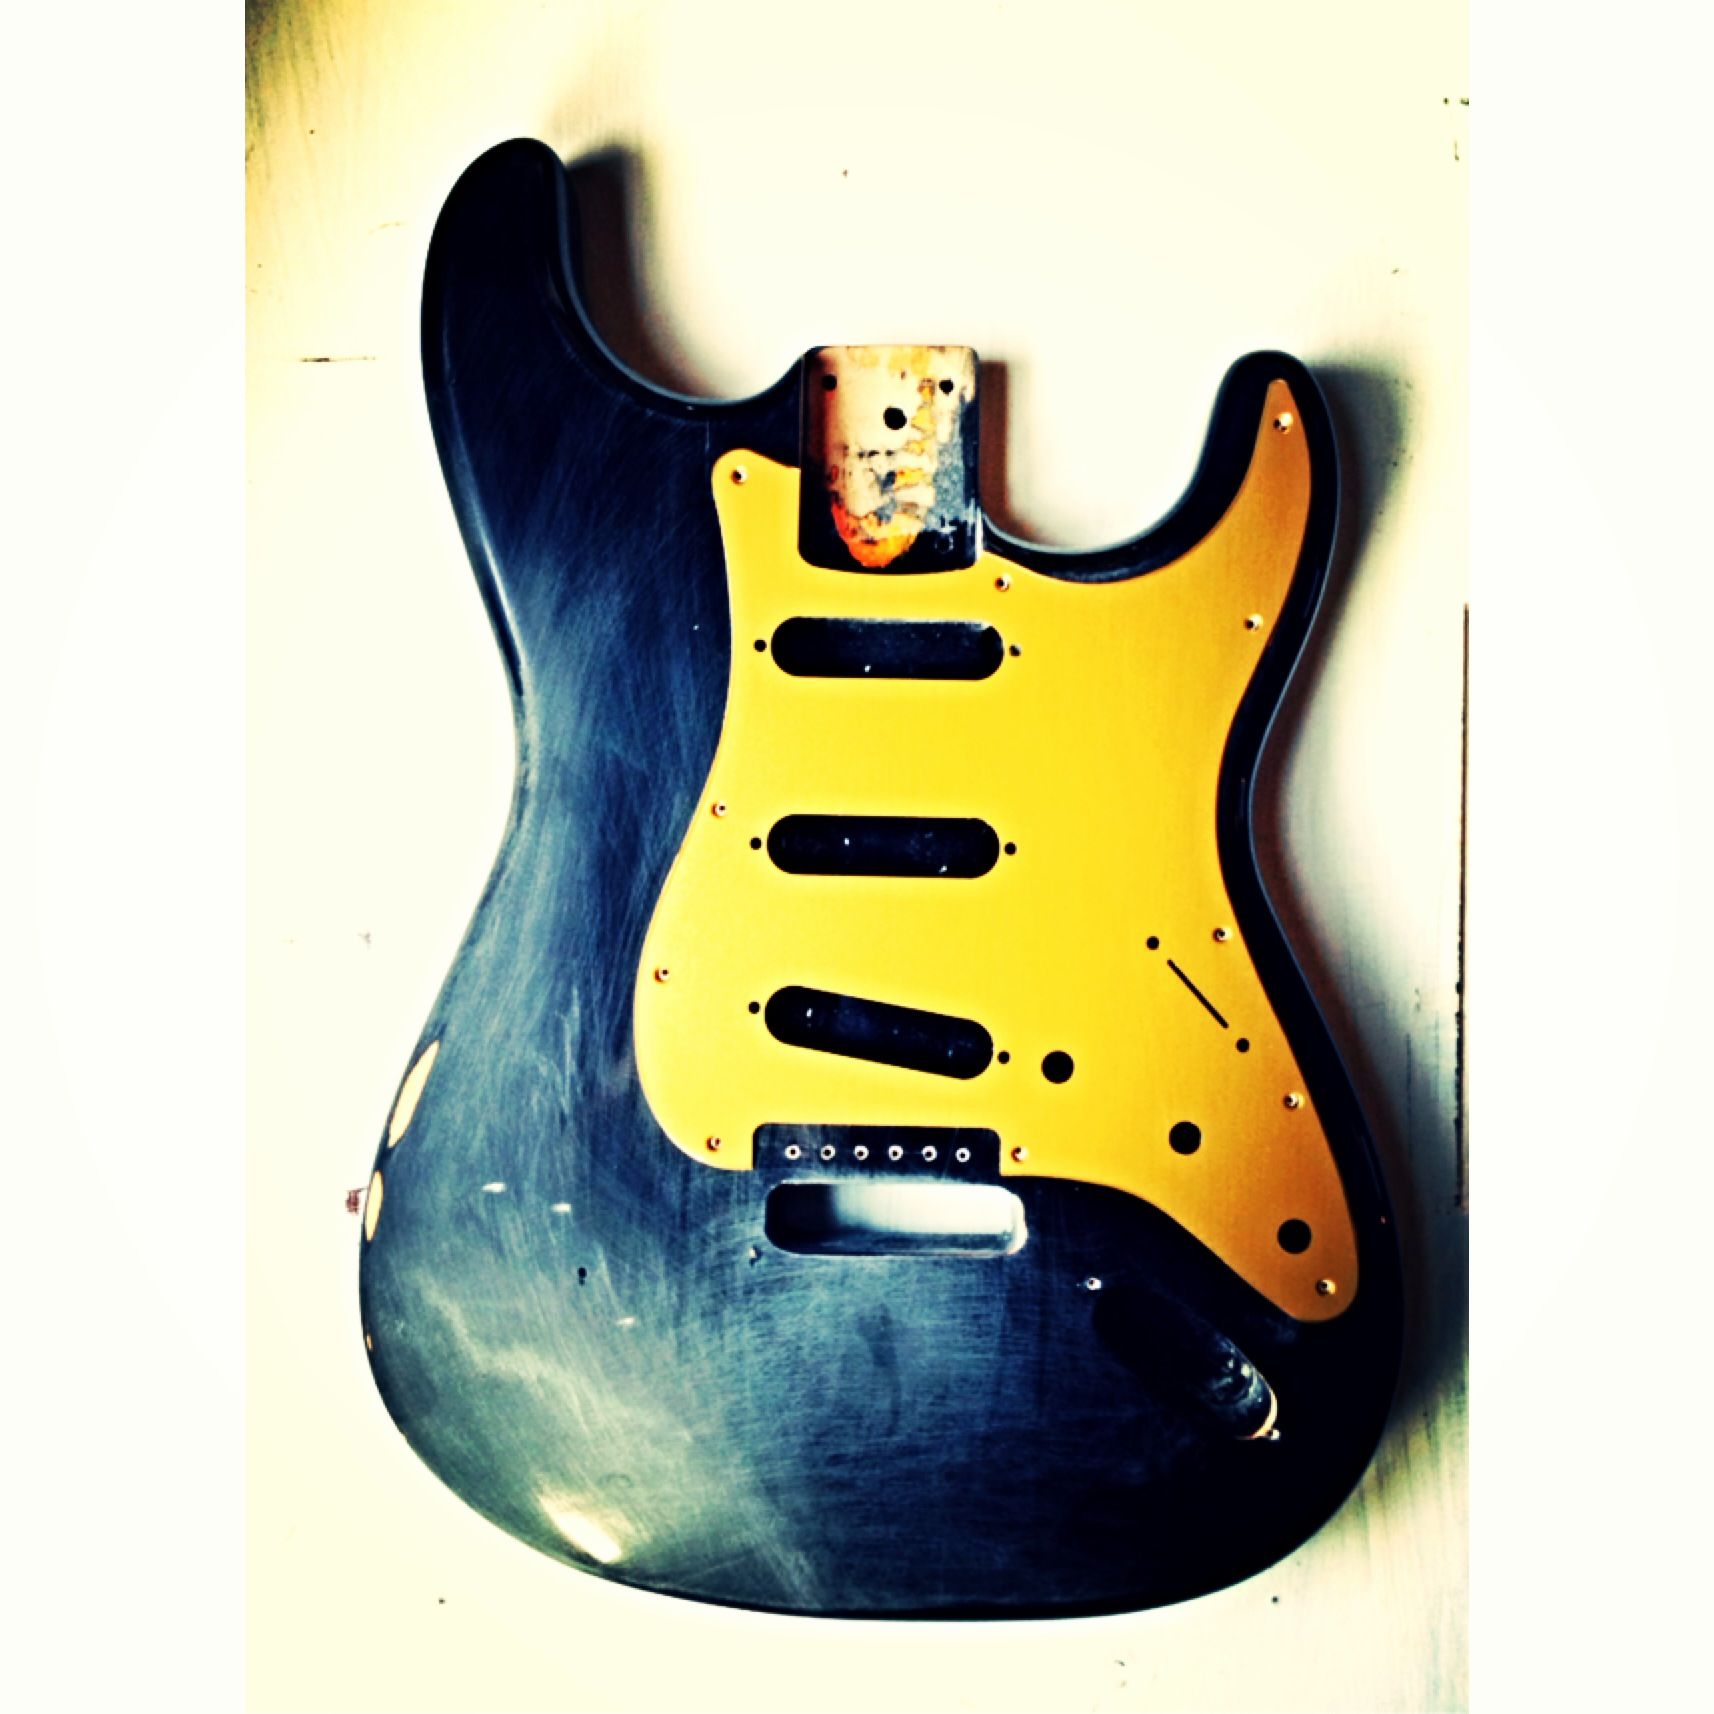 Aluminum Anodized Fender Stratocaster Pickguard. Color Brass.